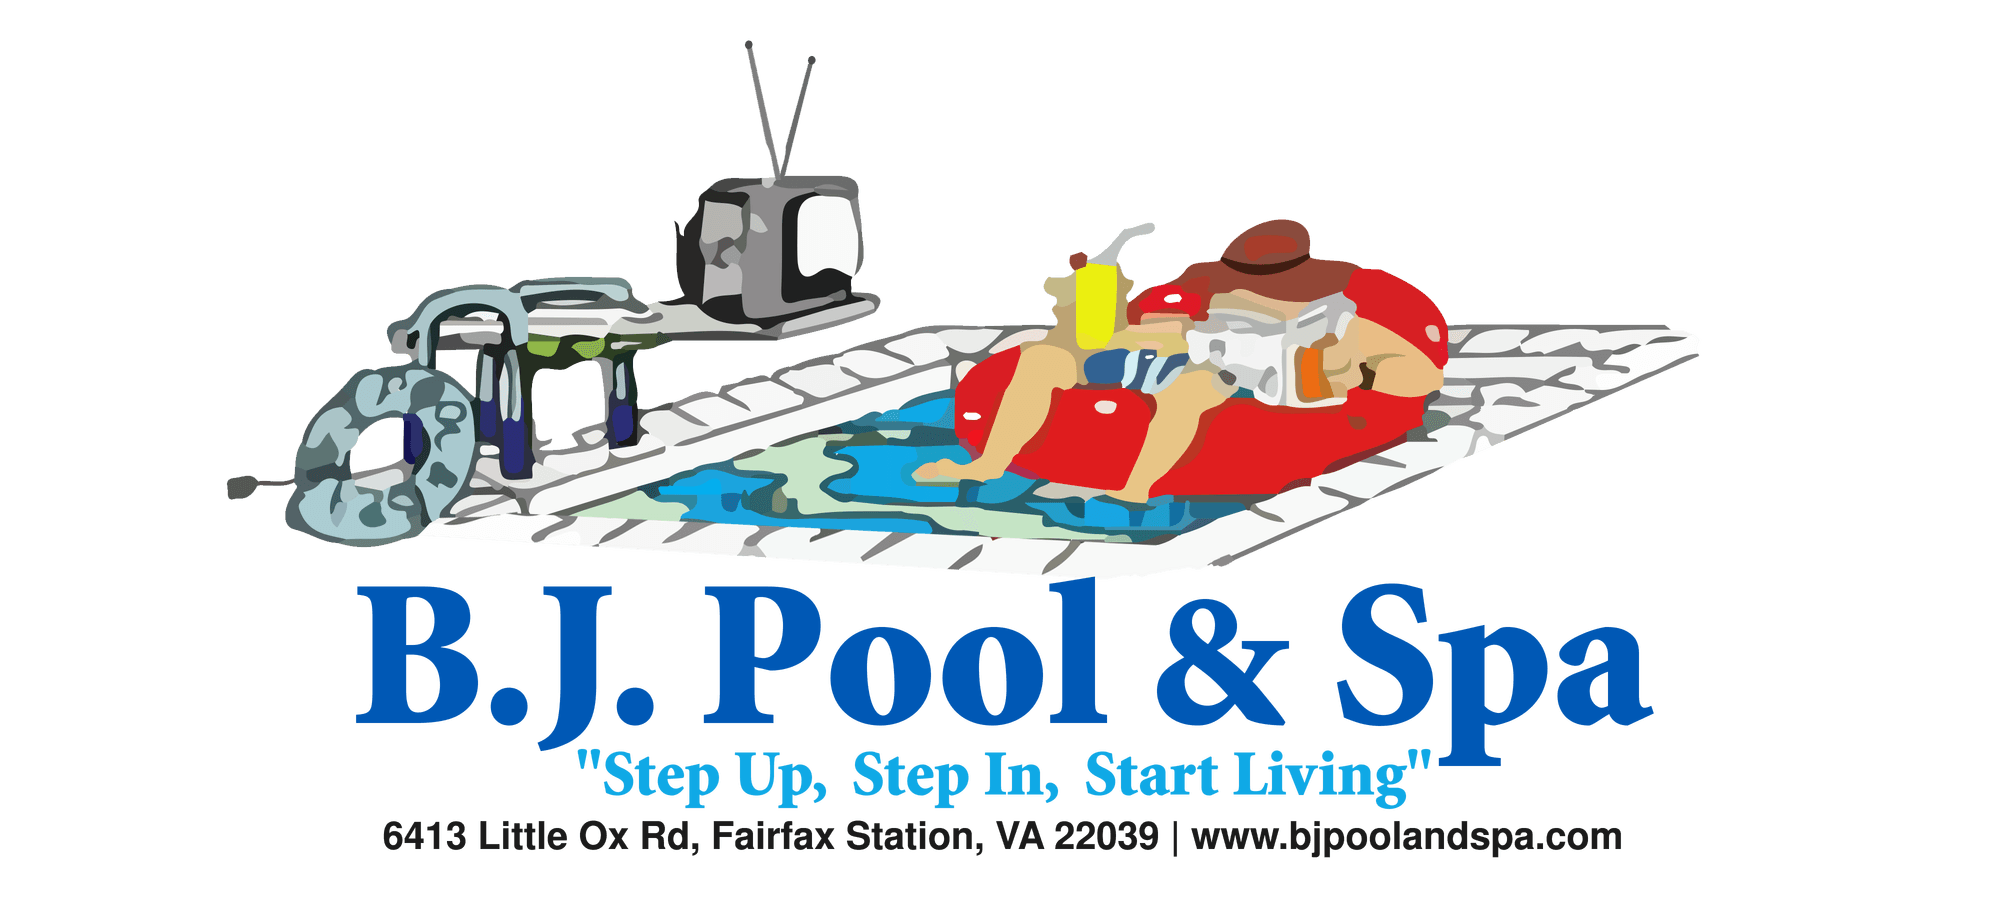 BJ Pool & Spa